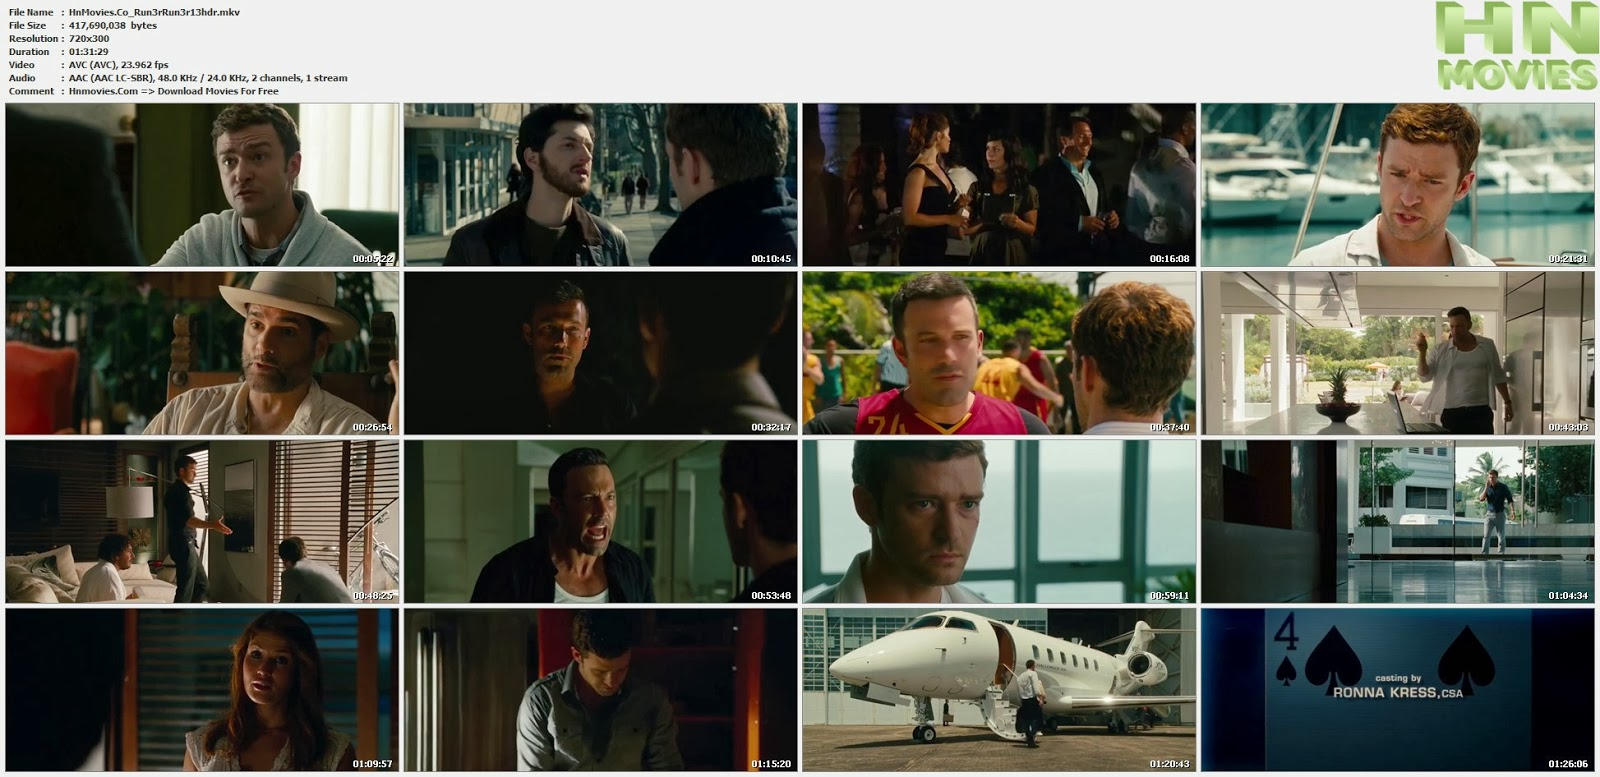 movie screenshot of Runner Runner fdmovie.com